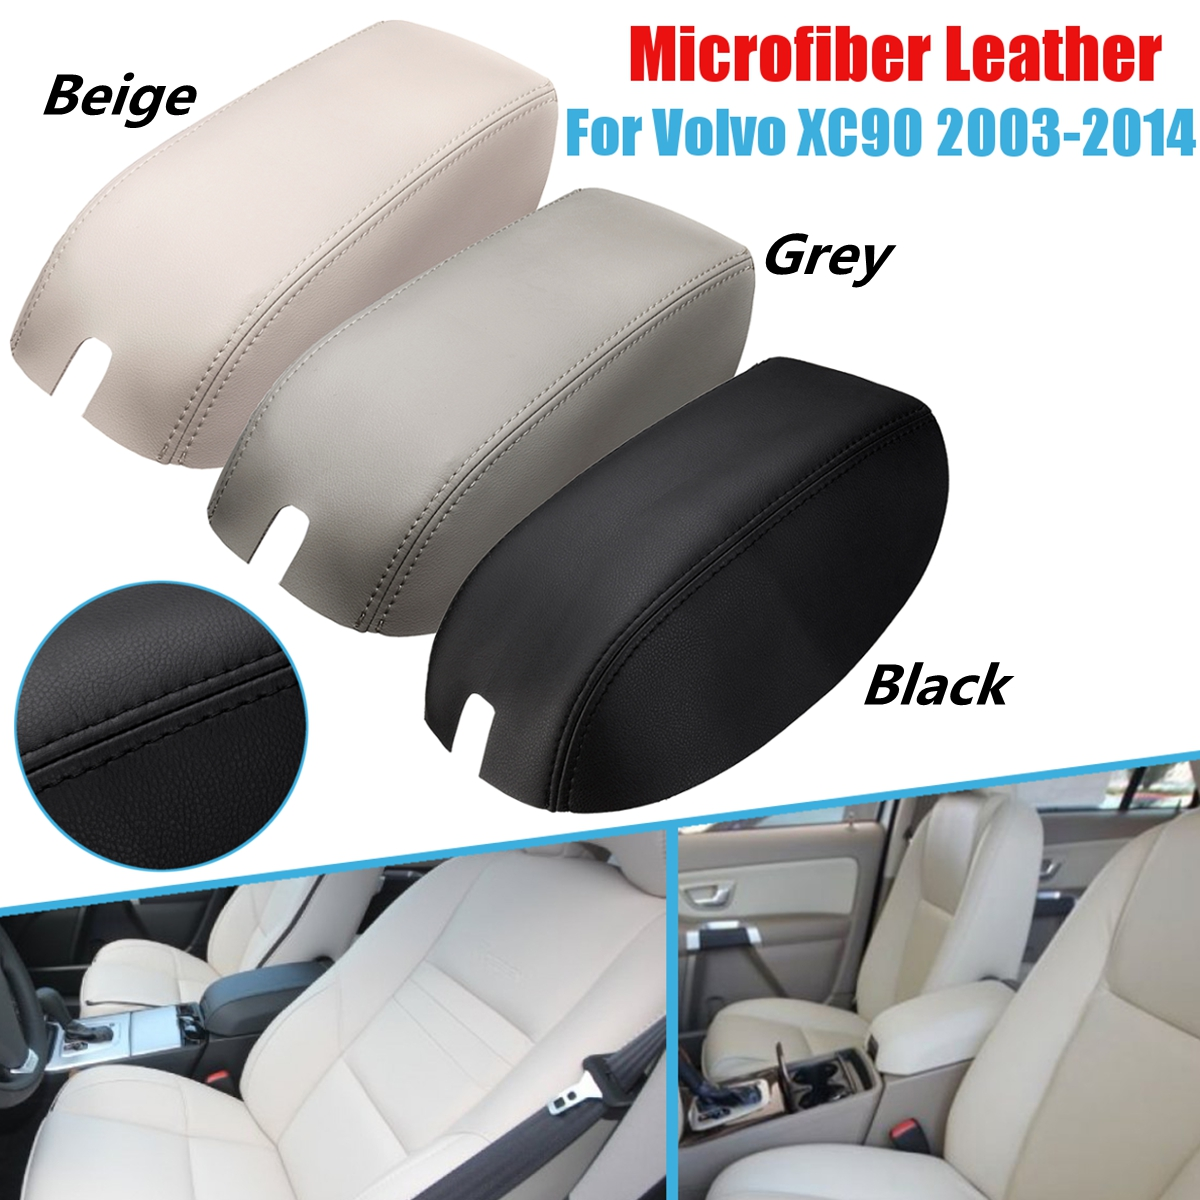 3 Colors Car Armrest Cover Leather Center Console Lid for For <font><b>Volvo</b></font> <font><b>XC90</b></font> <font><b>2003</b></font> 2004 2005 2006 2007 2008 2009 2010 2011-2014 image